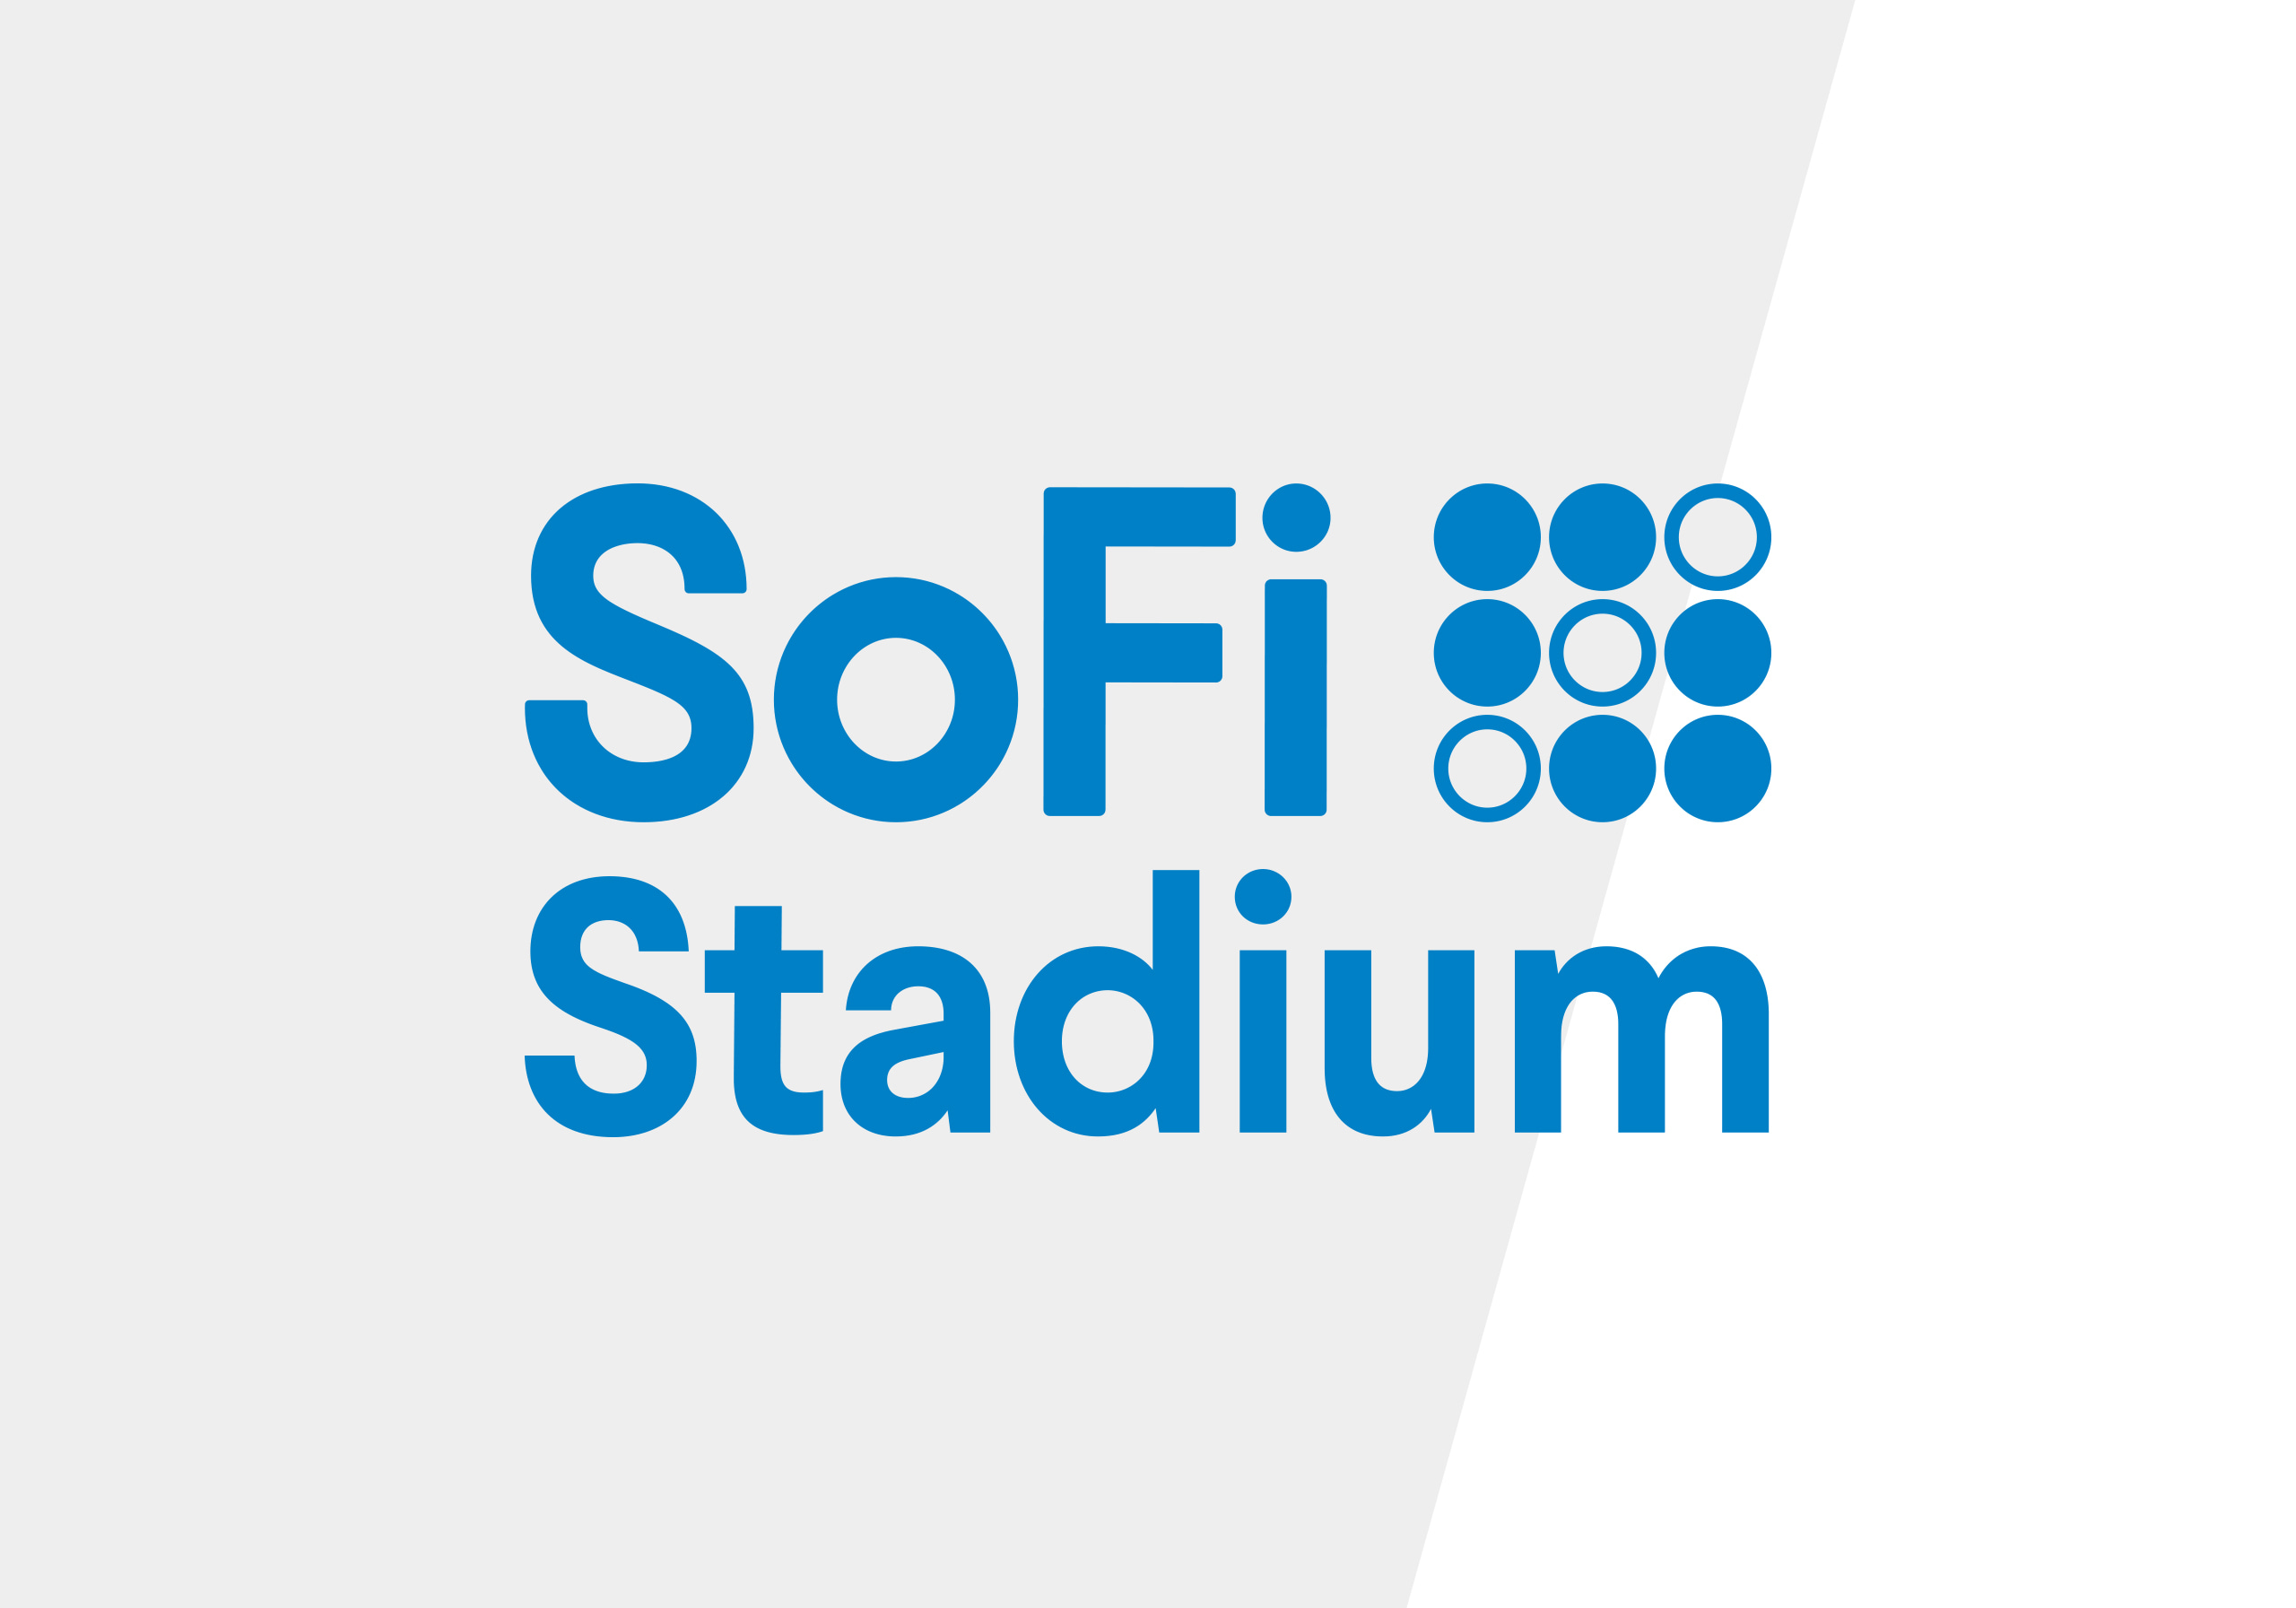 THE NEW SOFI STADIUM